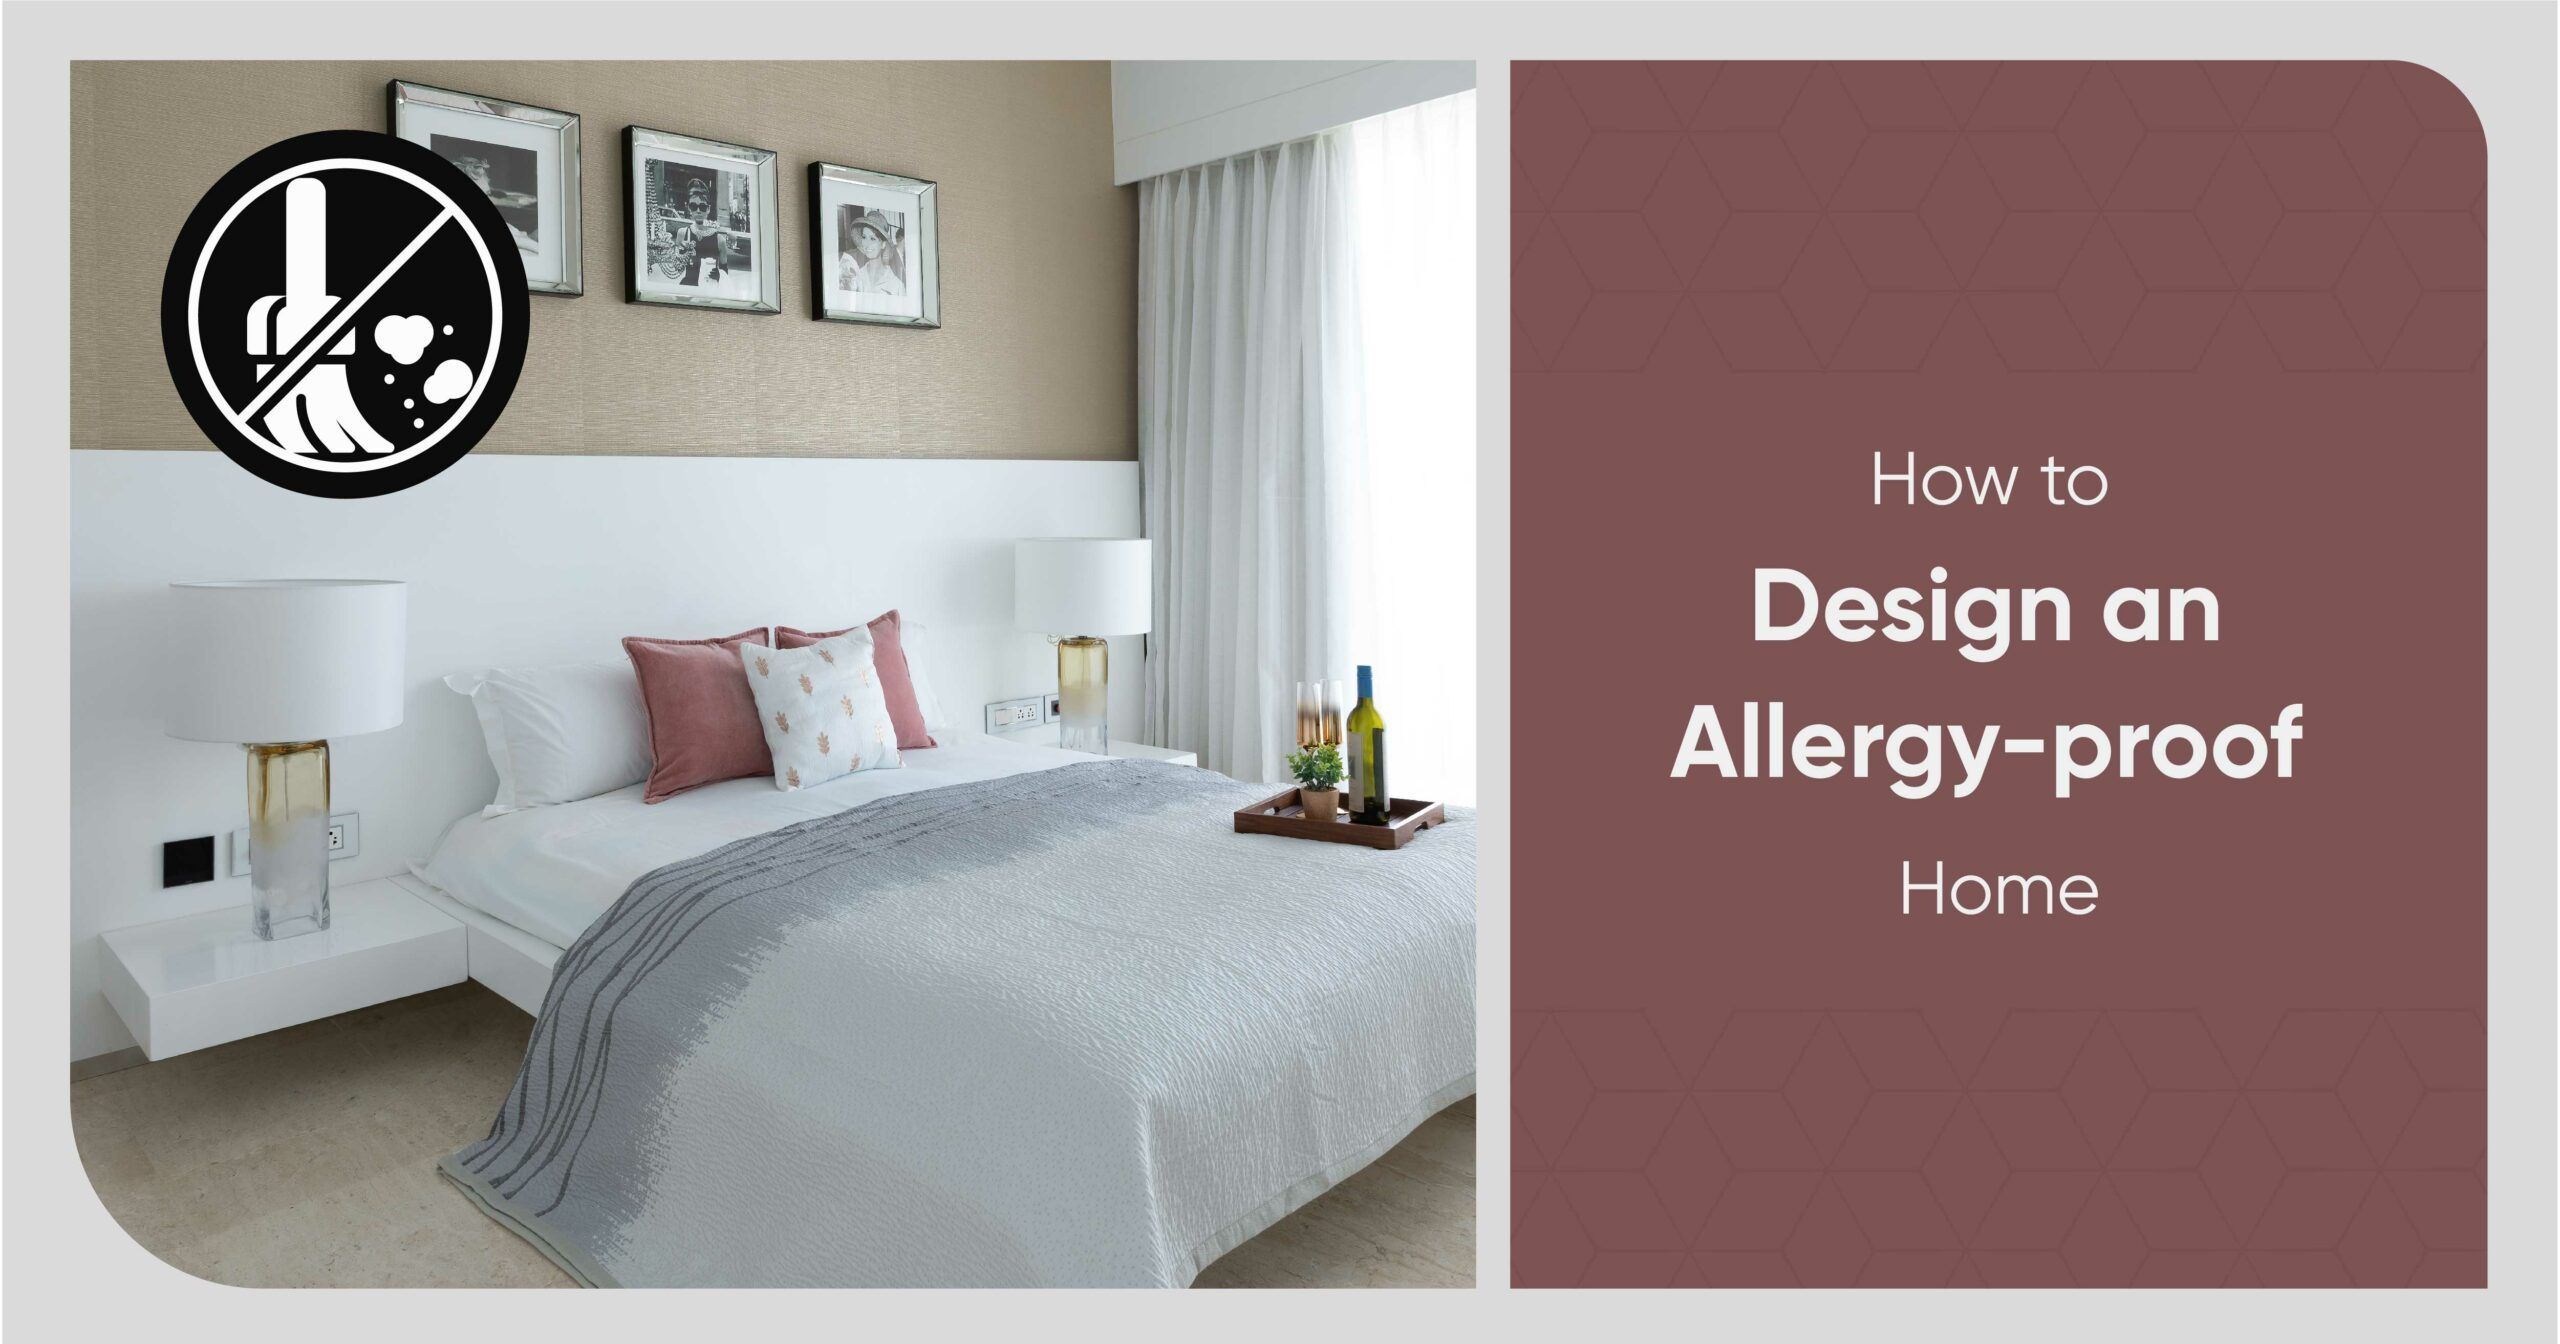 7 Smart But Simple Choices You Can Make for an Allergy-proof Home